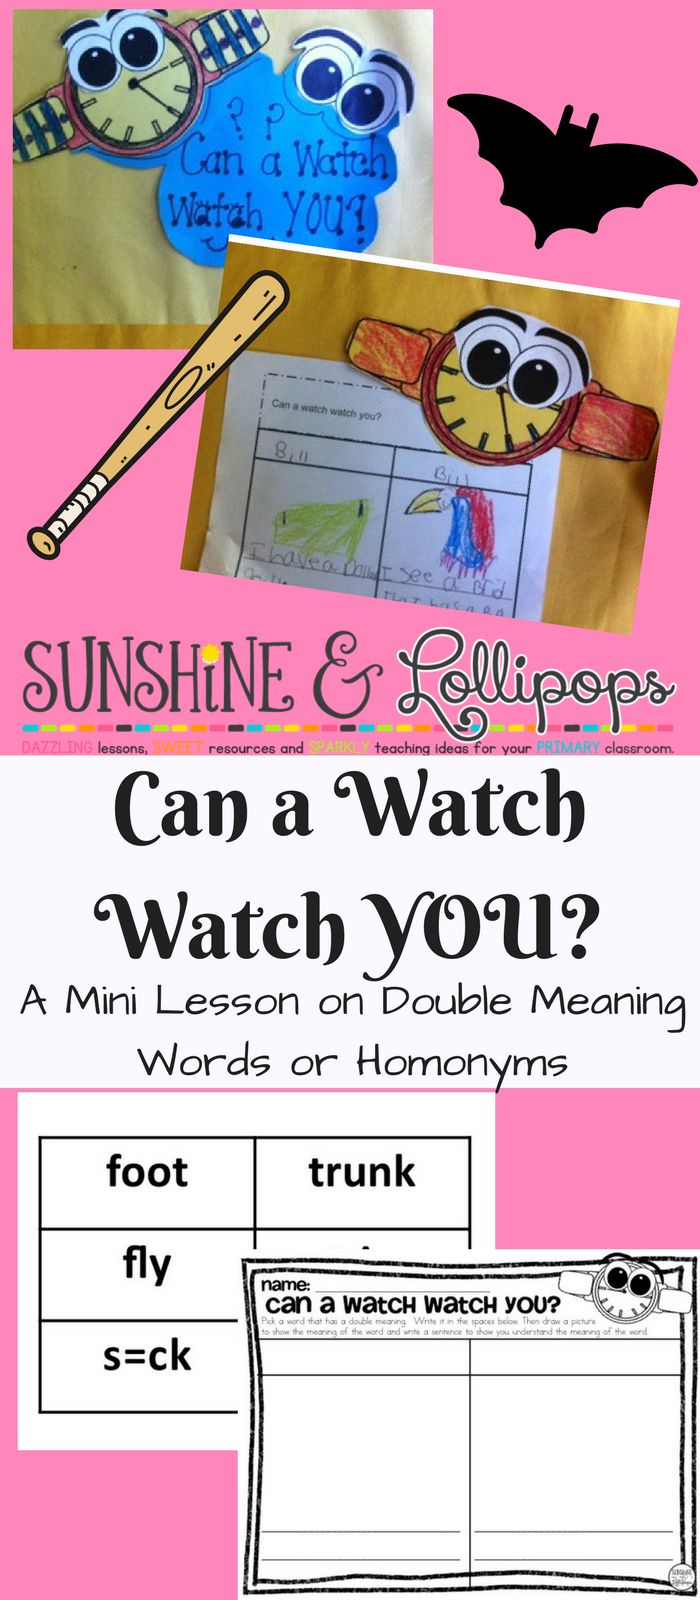 A fun craftivity and mini lesson plan on double meaning words.  Tried and true with first graders!!  Fun for everyone and a great tool for ELL kiddos!!! Enjoy!